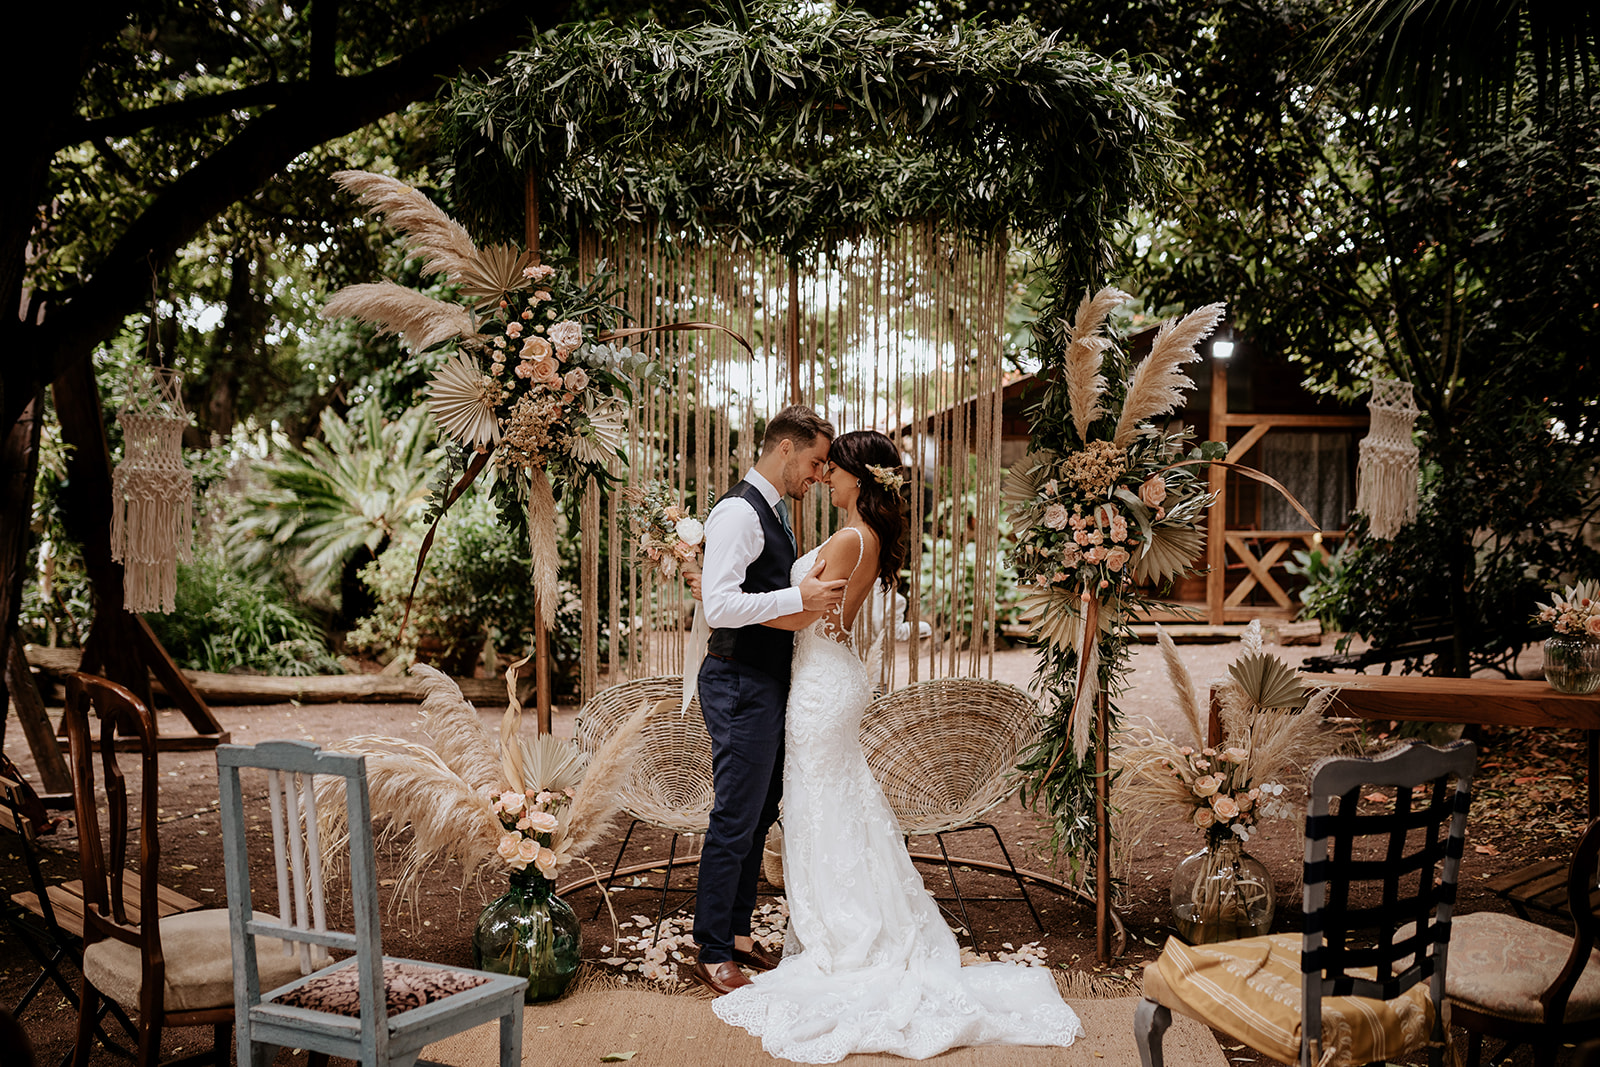 Wedding in Tenerife - Alternative Wedding - Boho style tenerife